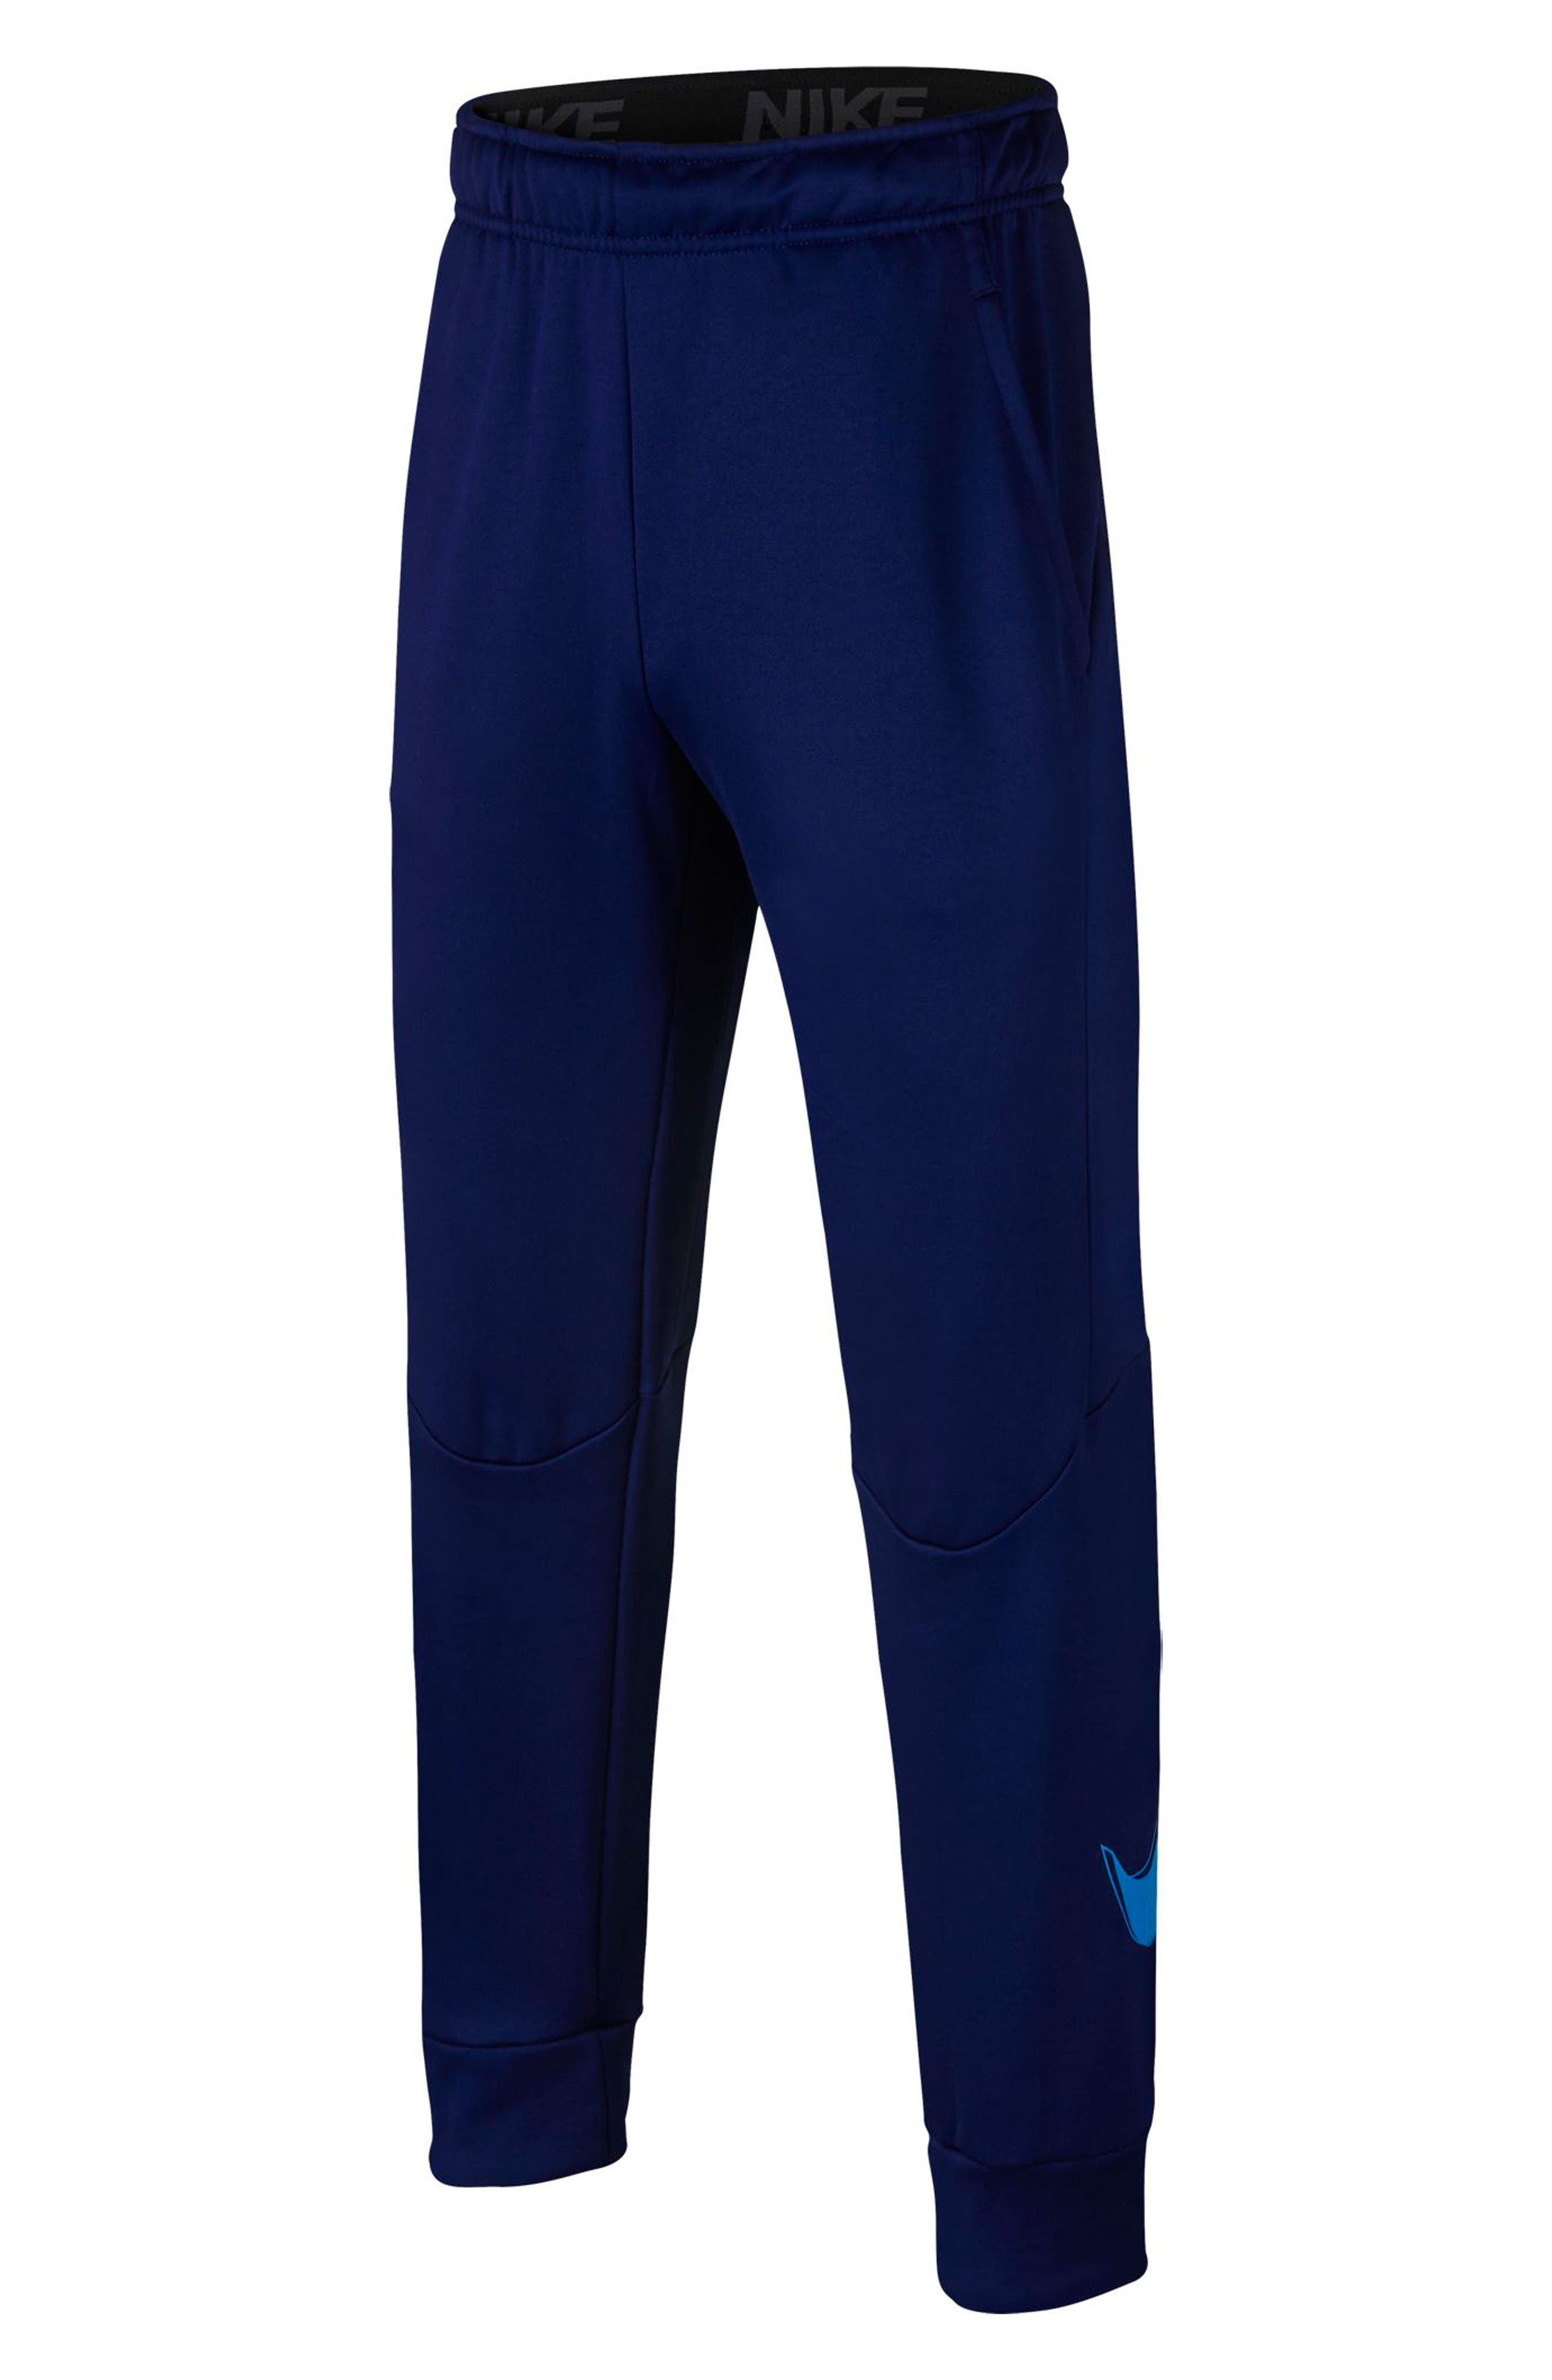 NIKE Therma Sweatpants, Main, color, BLUE VOID/ BLUE HERO